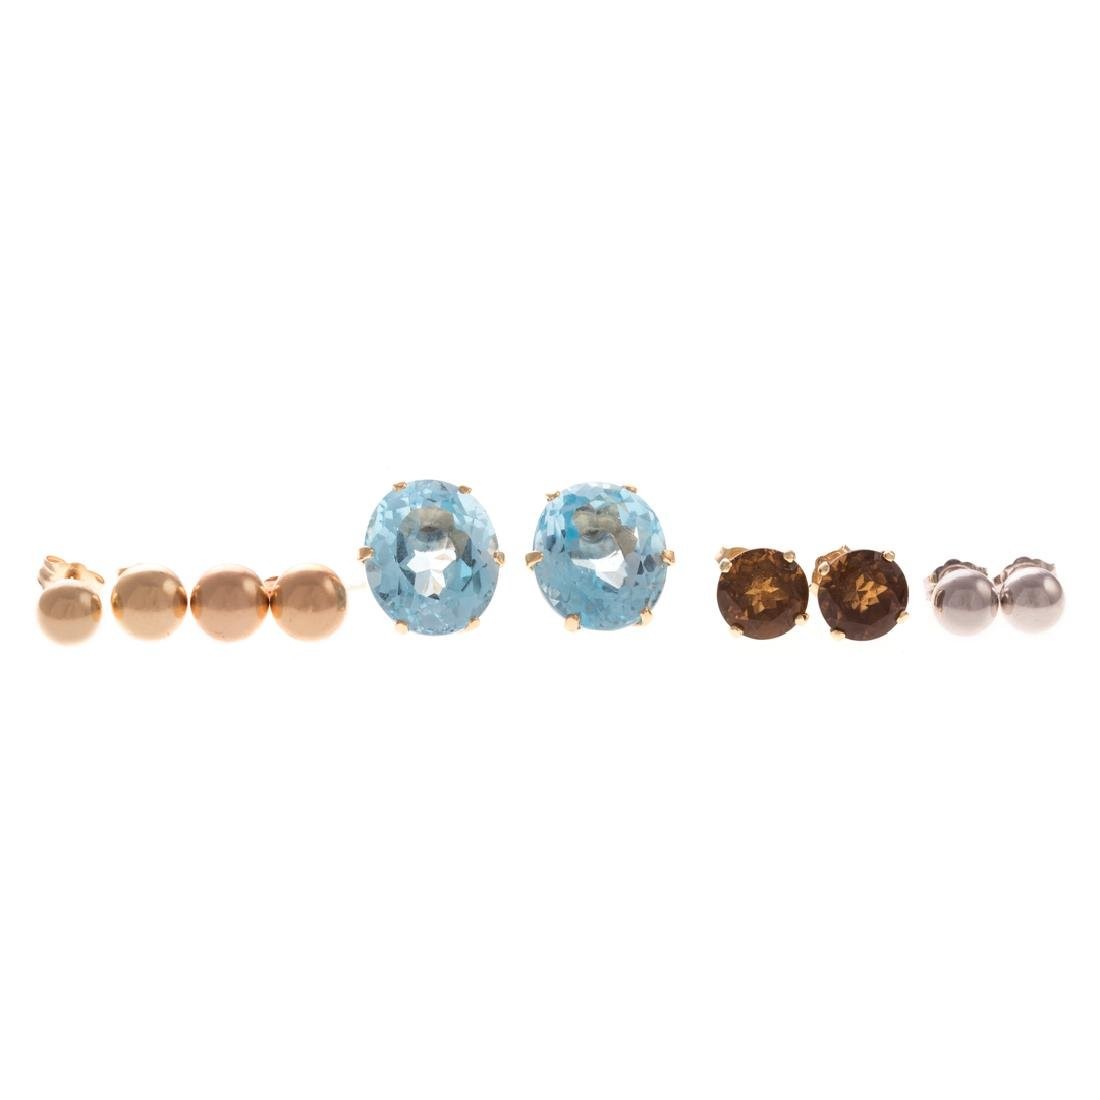 A Collection of Lady's Studs in 14K Gold